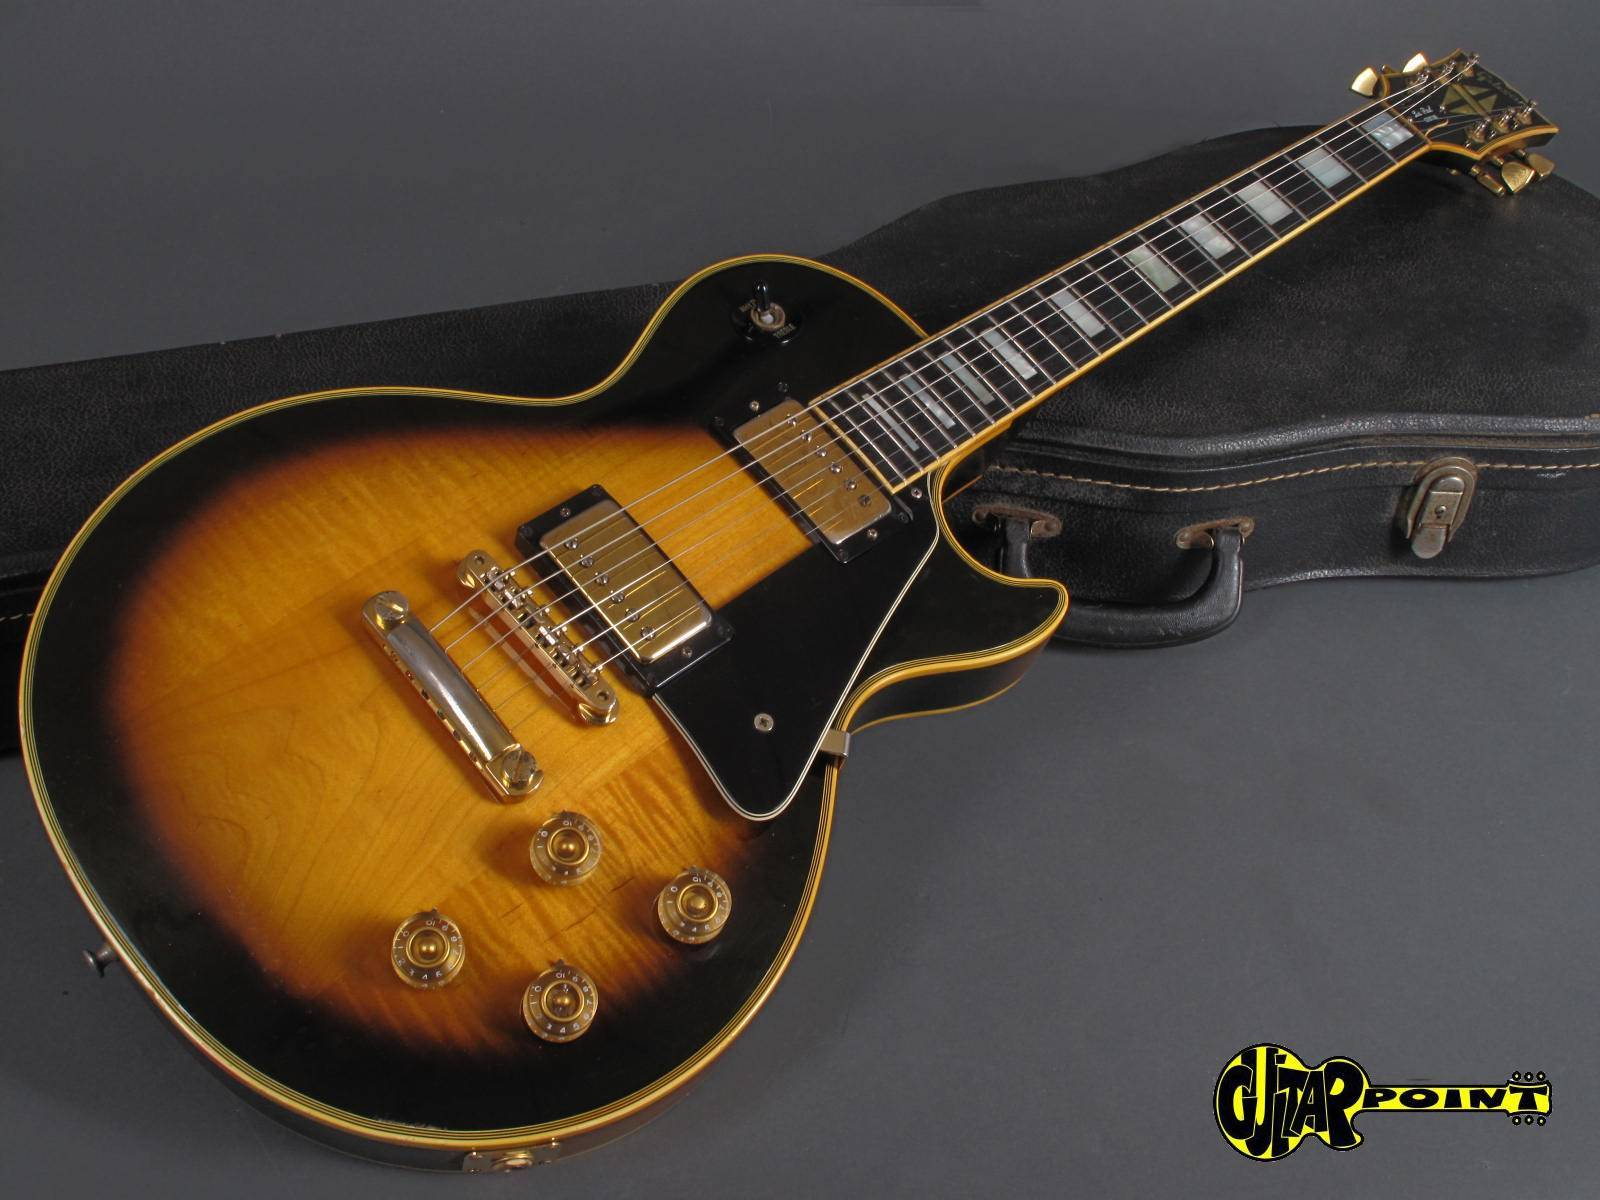 1974 Les Paul Custom : gibson les paul custom 1974 tobacco sunburst guitar for sale guitarpoint ~ Hamham.info Haus und Dekorationen